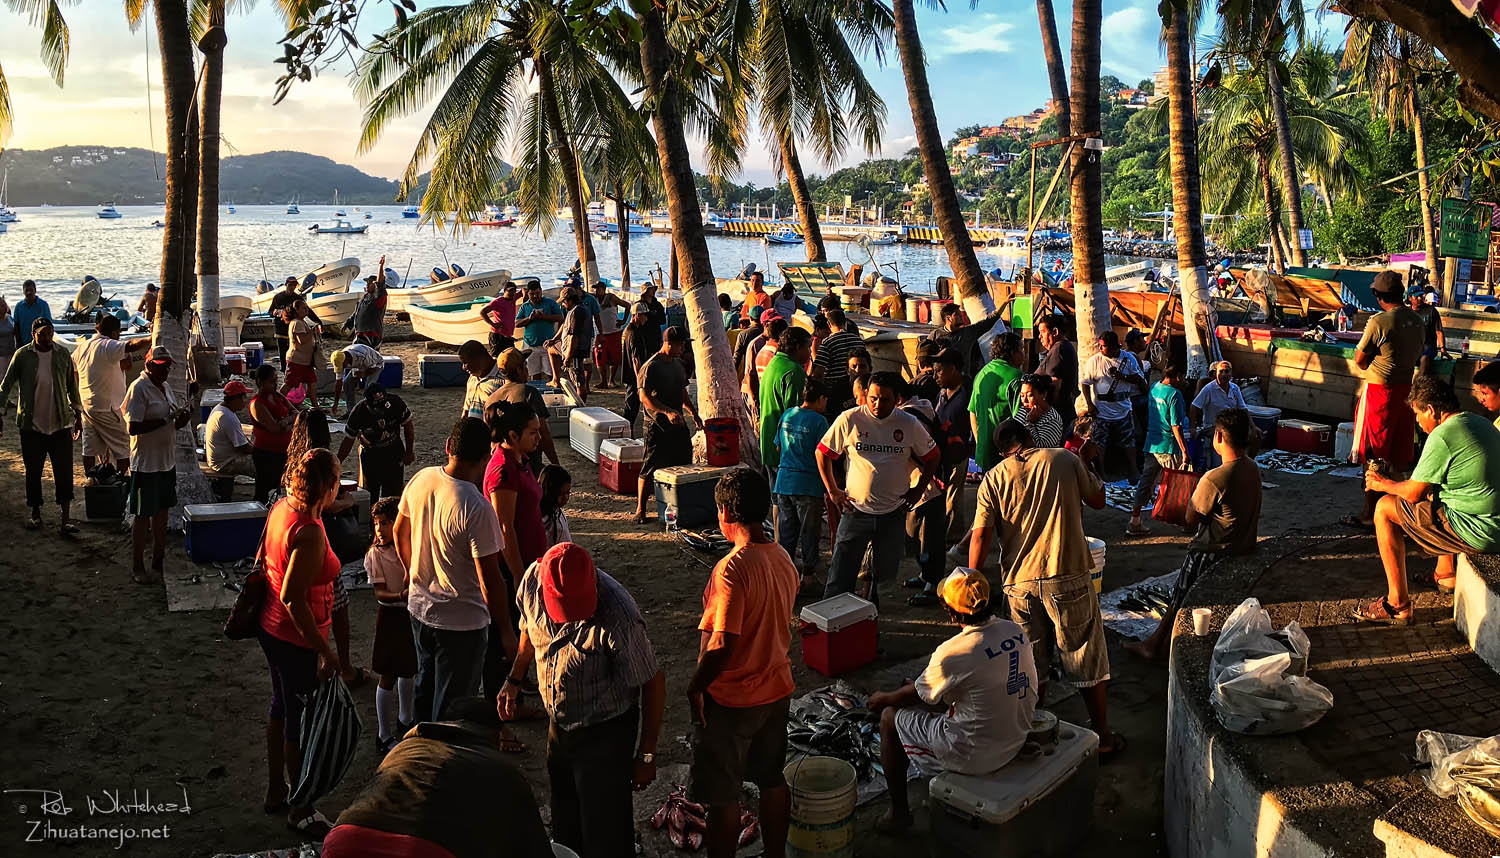 Fishermen's market on the downtown beach, Zihuatanejo